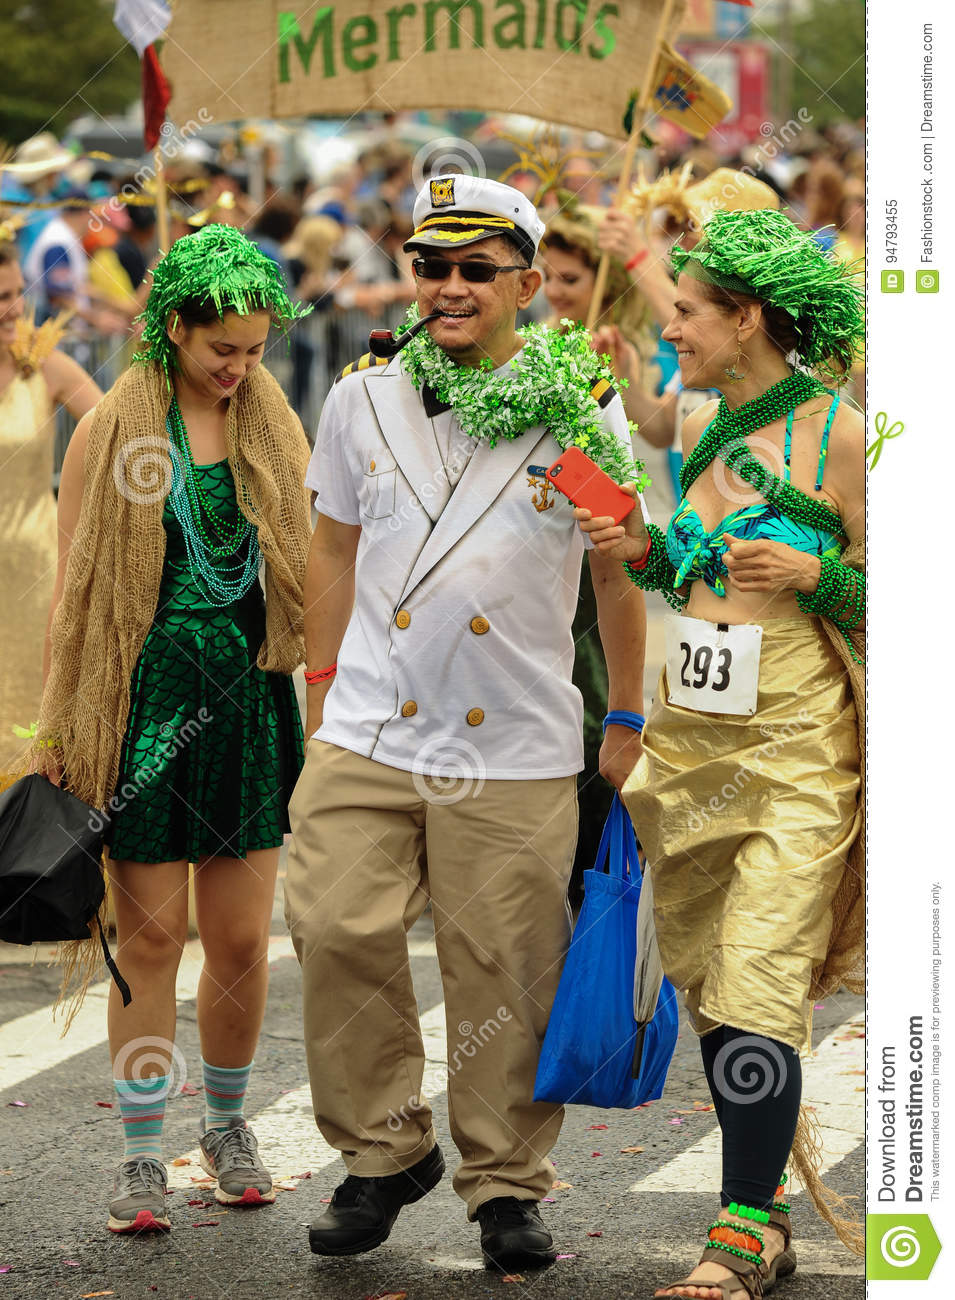 Participants march in the 35th Annual Mermaid Parade at Coney Island